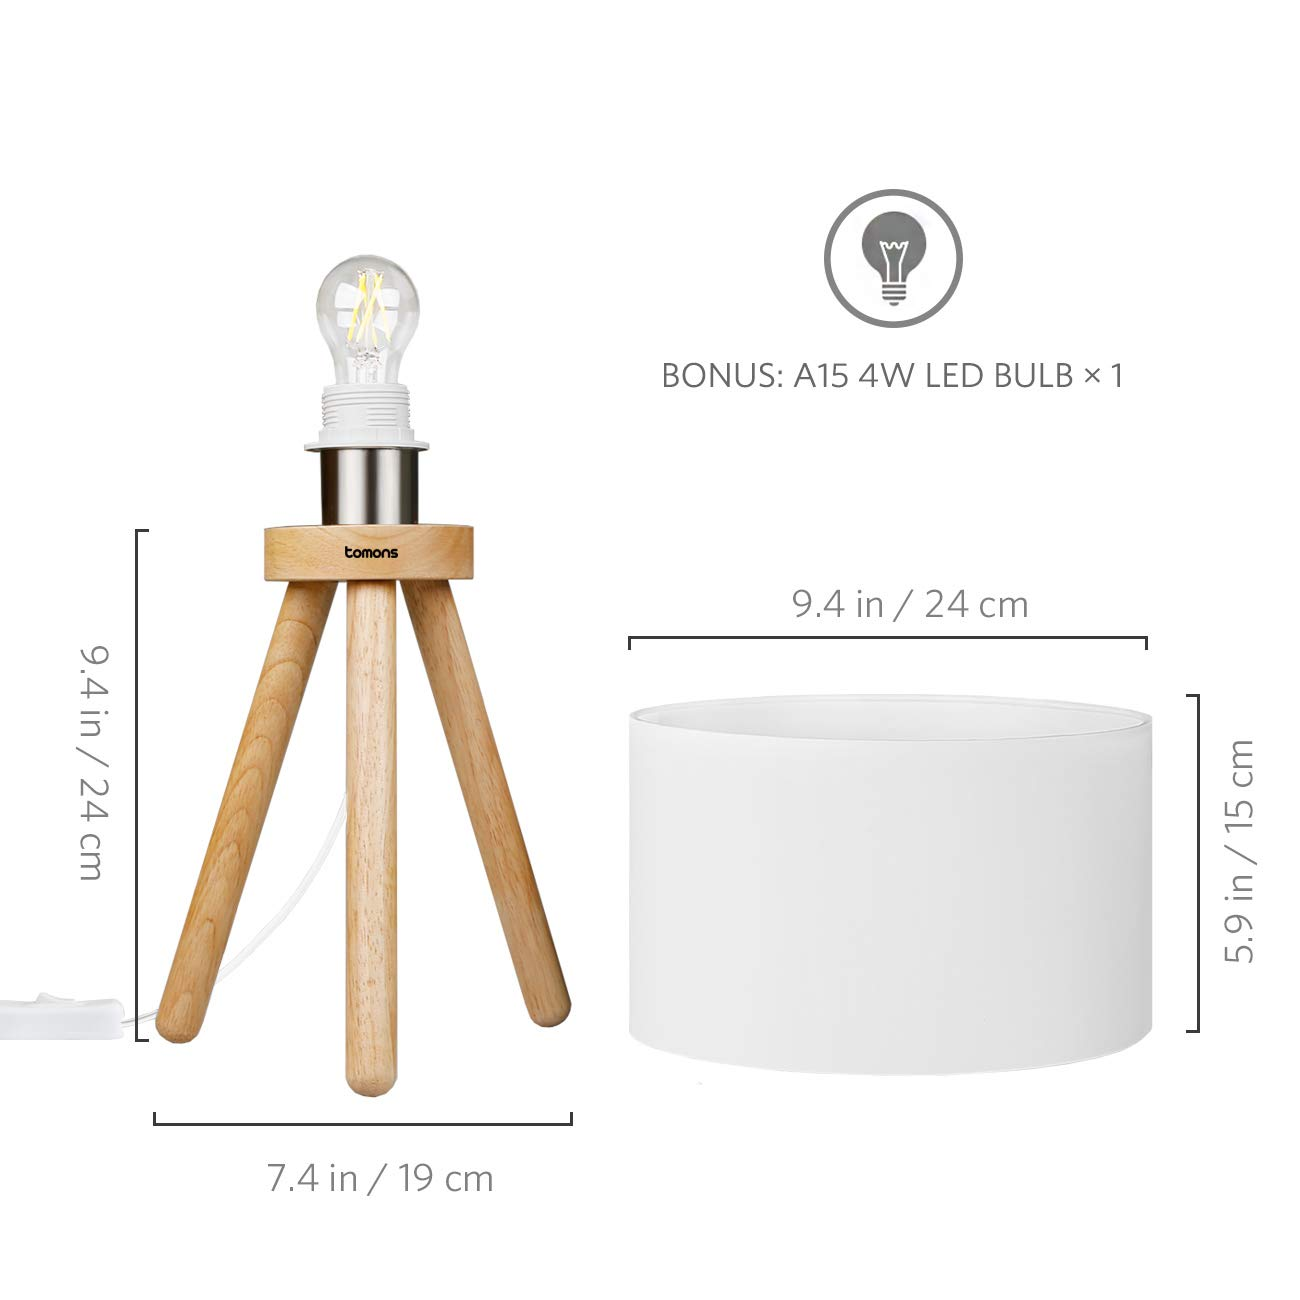 Tomons Wood Tripod Bedside Lamp, Simple Design with Soft Light for Bedroom Decorated in Warm and Cozy Ambience, Polyester White Fabric Lampshade, Packaged with 4W LED Bulb, Warm White Light, 39cm High by Tomons (Image #7)